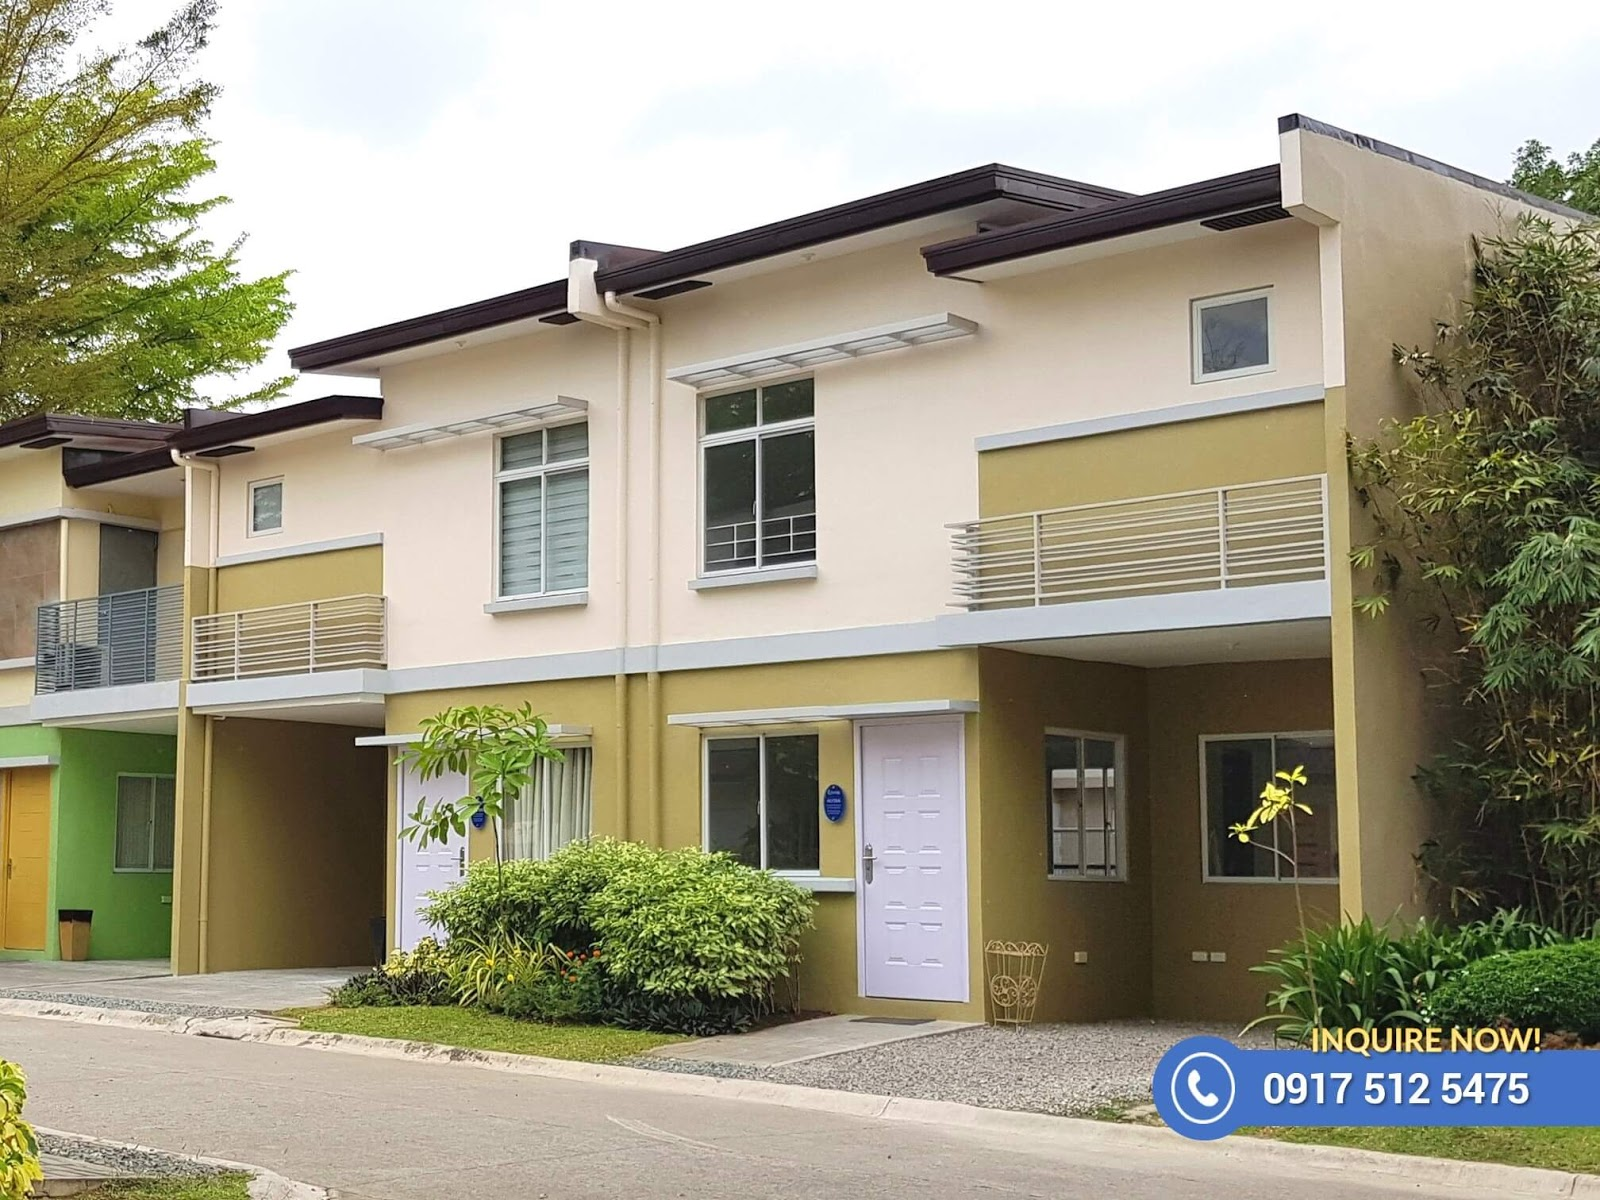 Alyssa With Fence - Lancaster New City Cavite   House and Lot for Sale General Trias Cavite